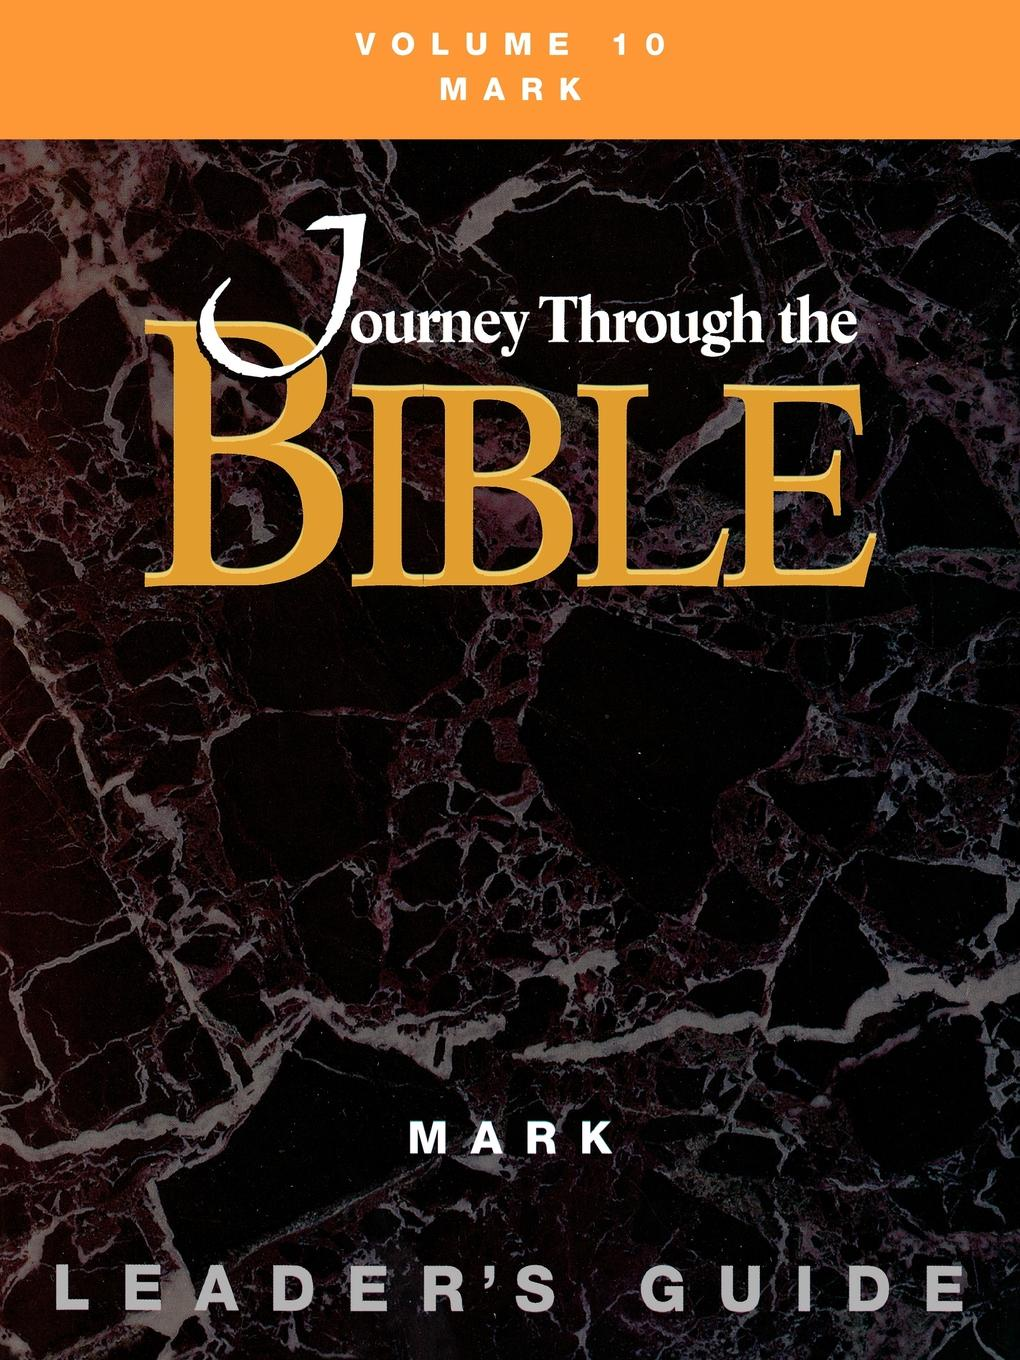 Mary Jo Osterman Journey through the Bible Volume 10, Mark Leaders Guide